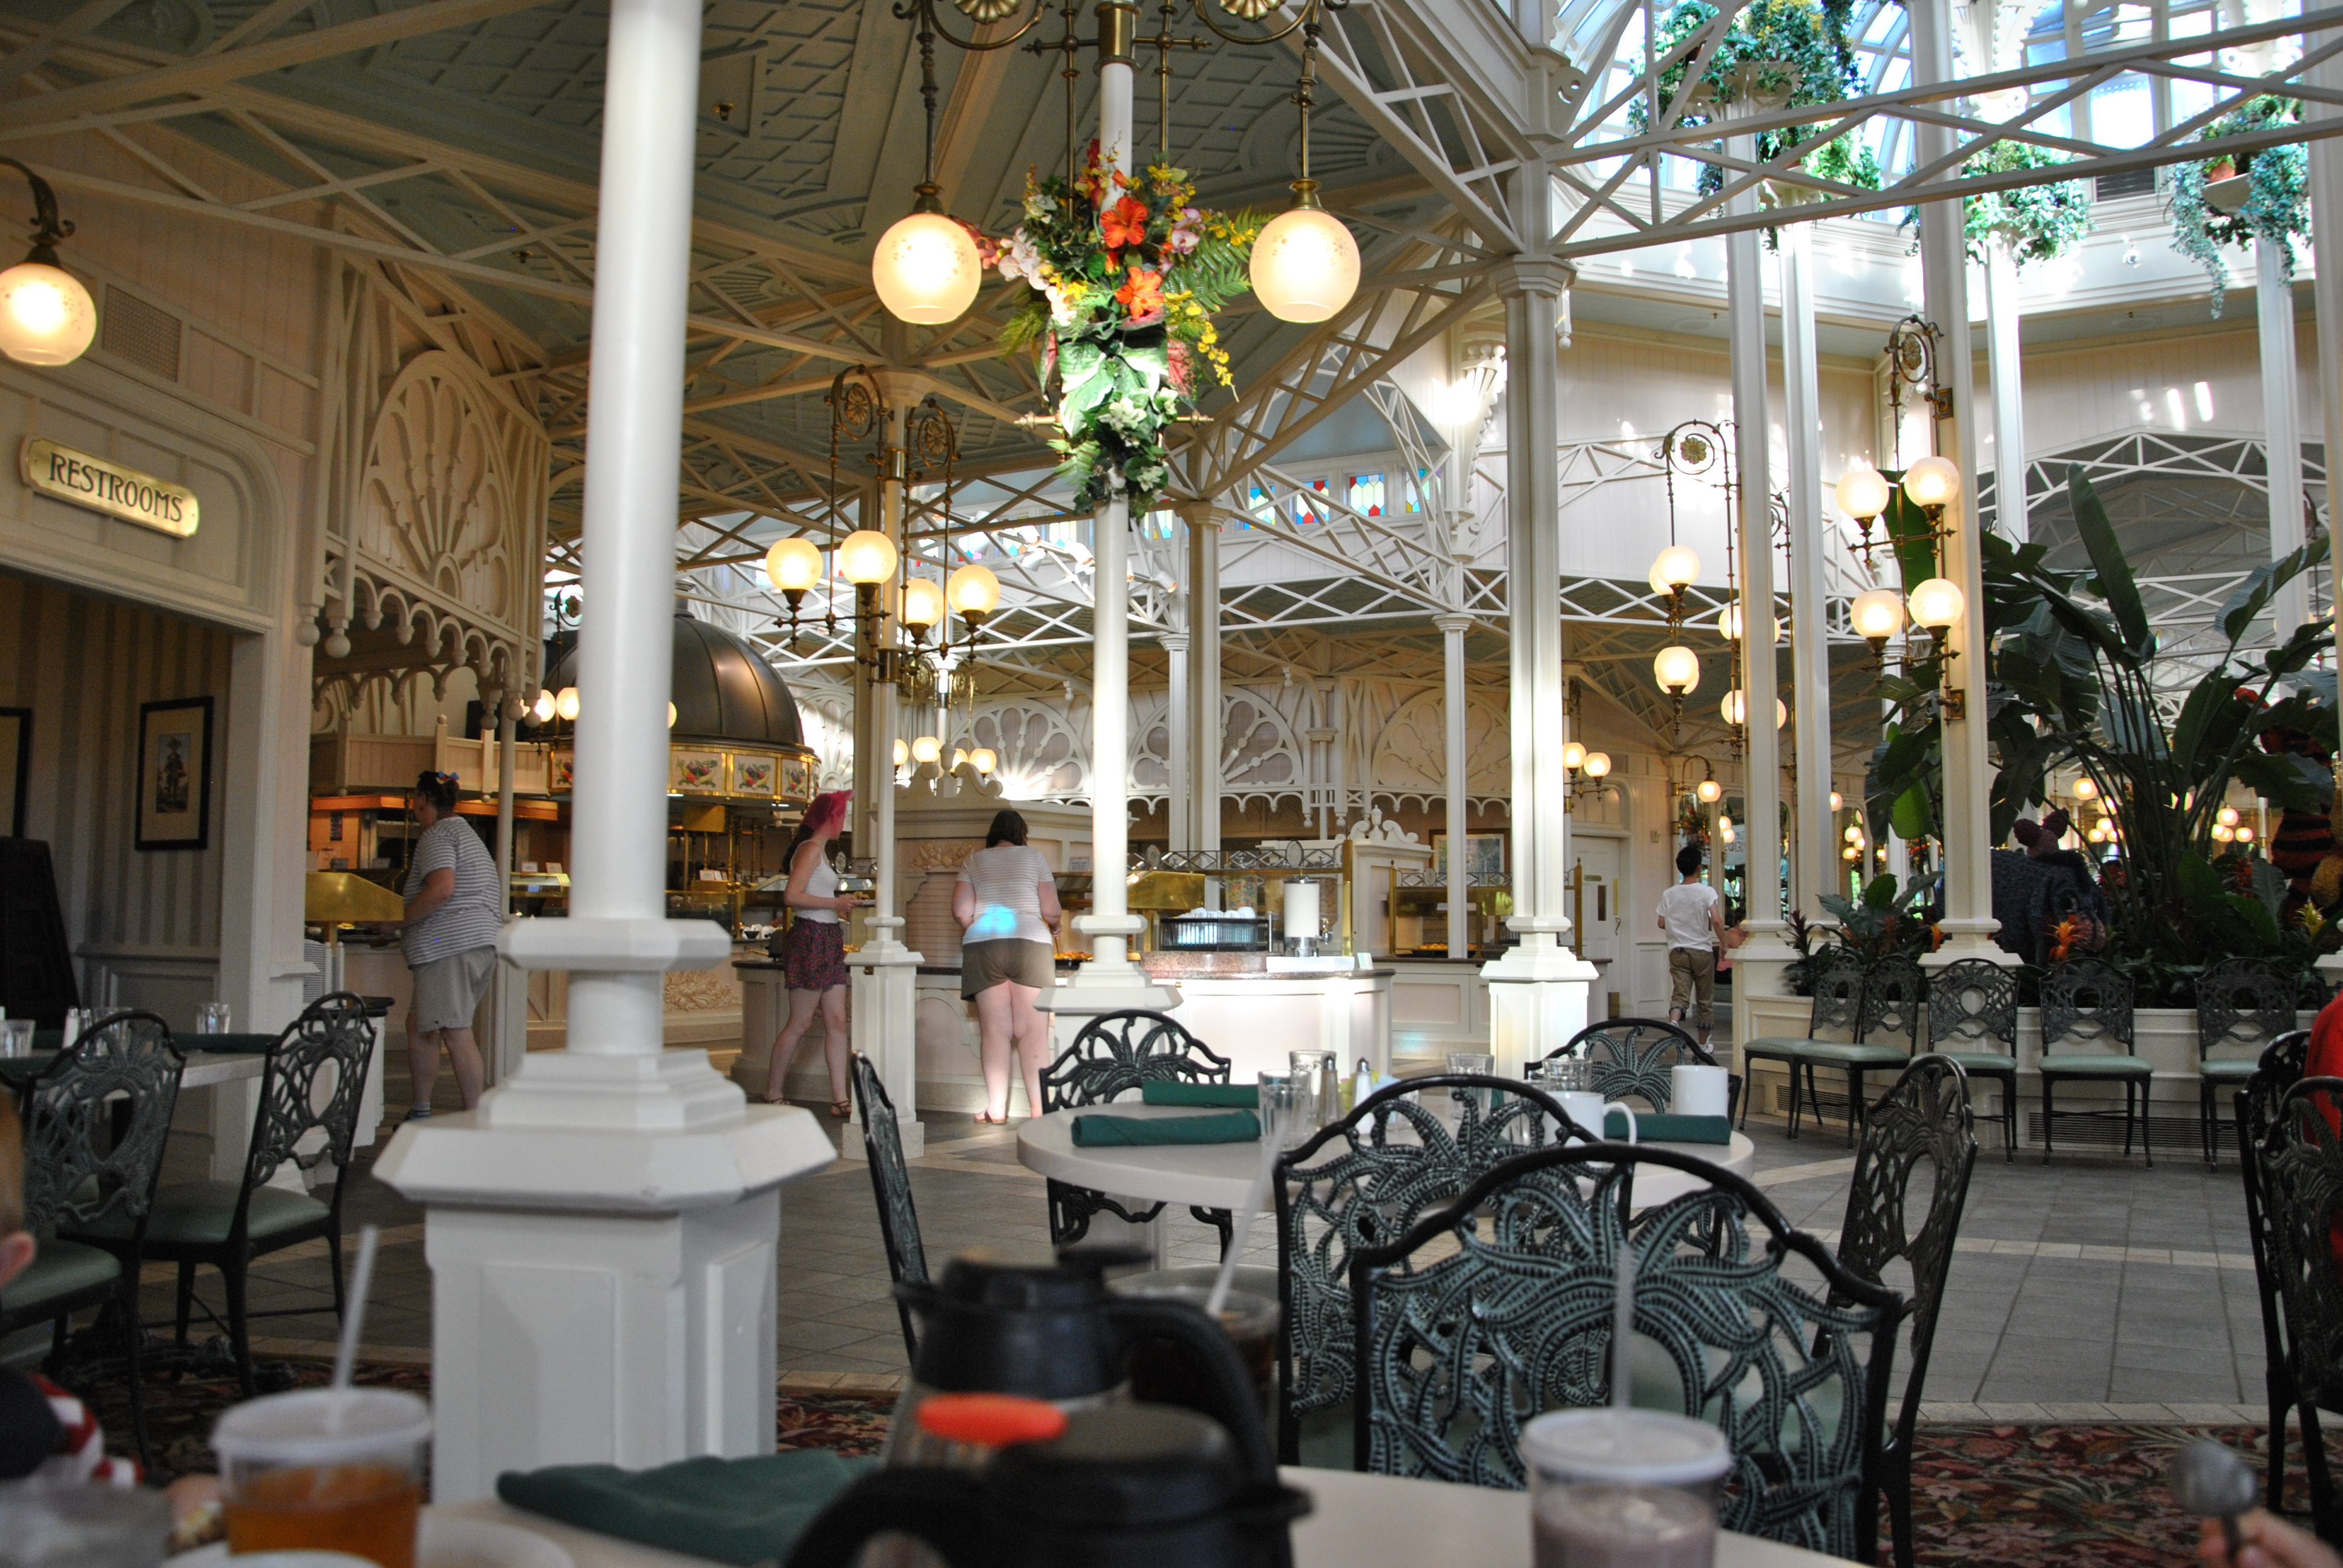 C4 On The Go >> Walt Disney World Restaurant Review – The Crystal Palace ...